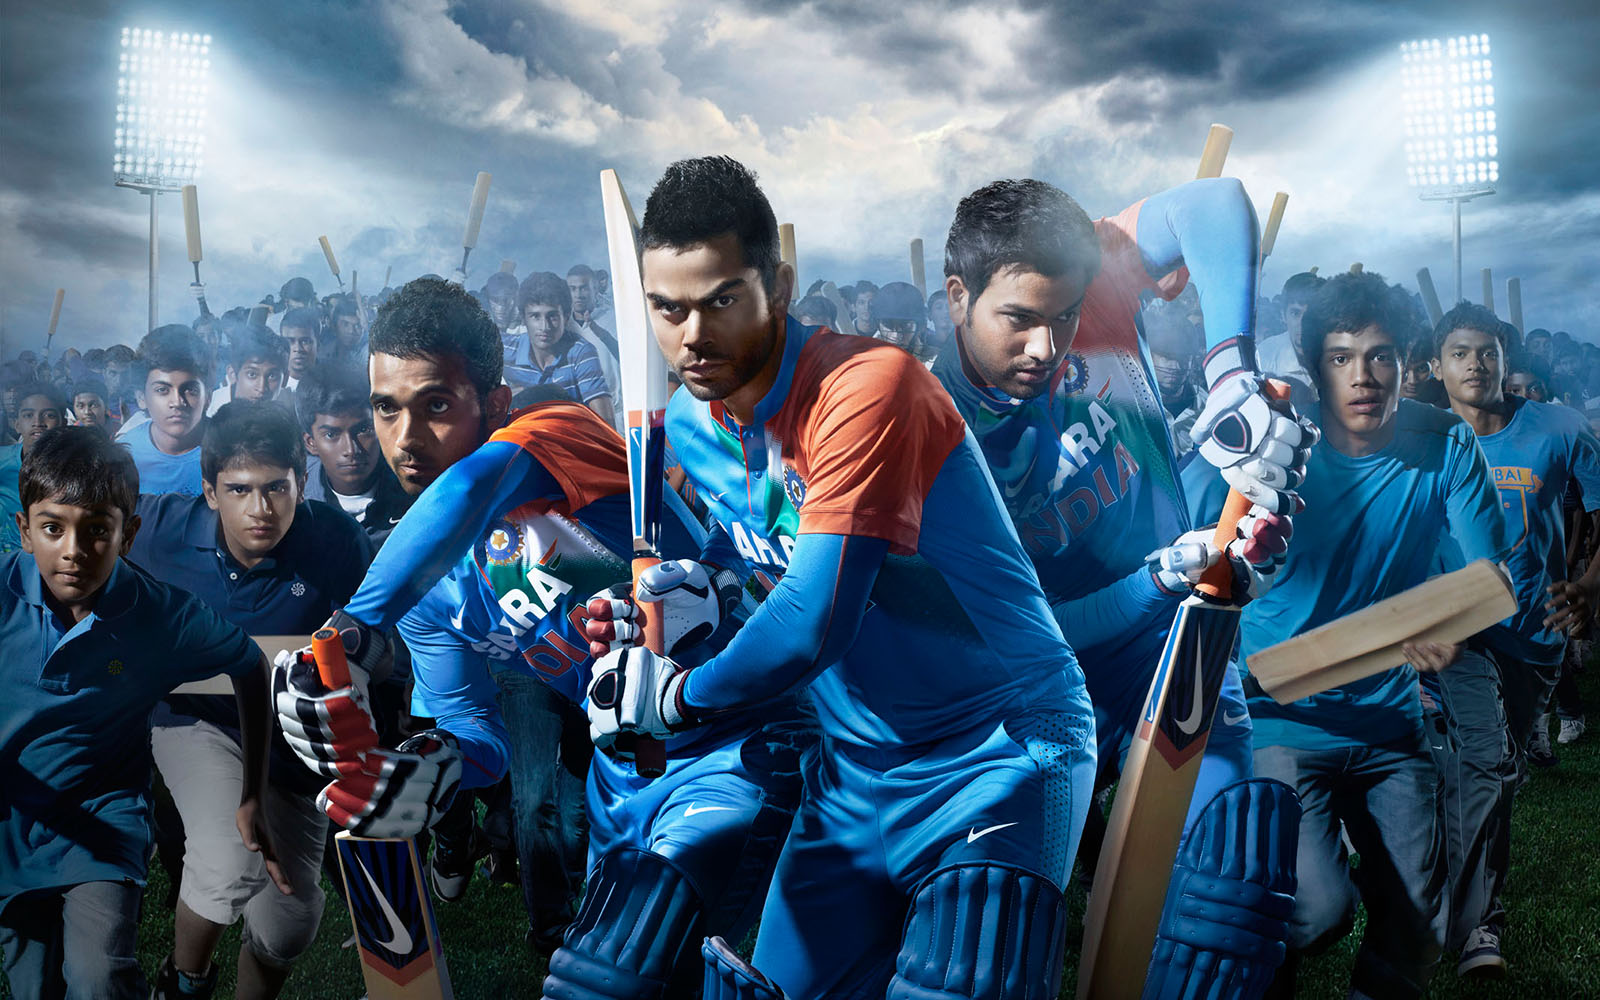 """Indian Cricket Hd Wallpapers: NIKE """"CRICKET I"""" / Client: Nike India / Agency: Nike HQ"""